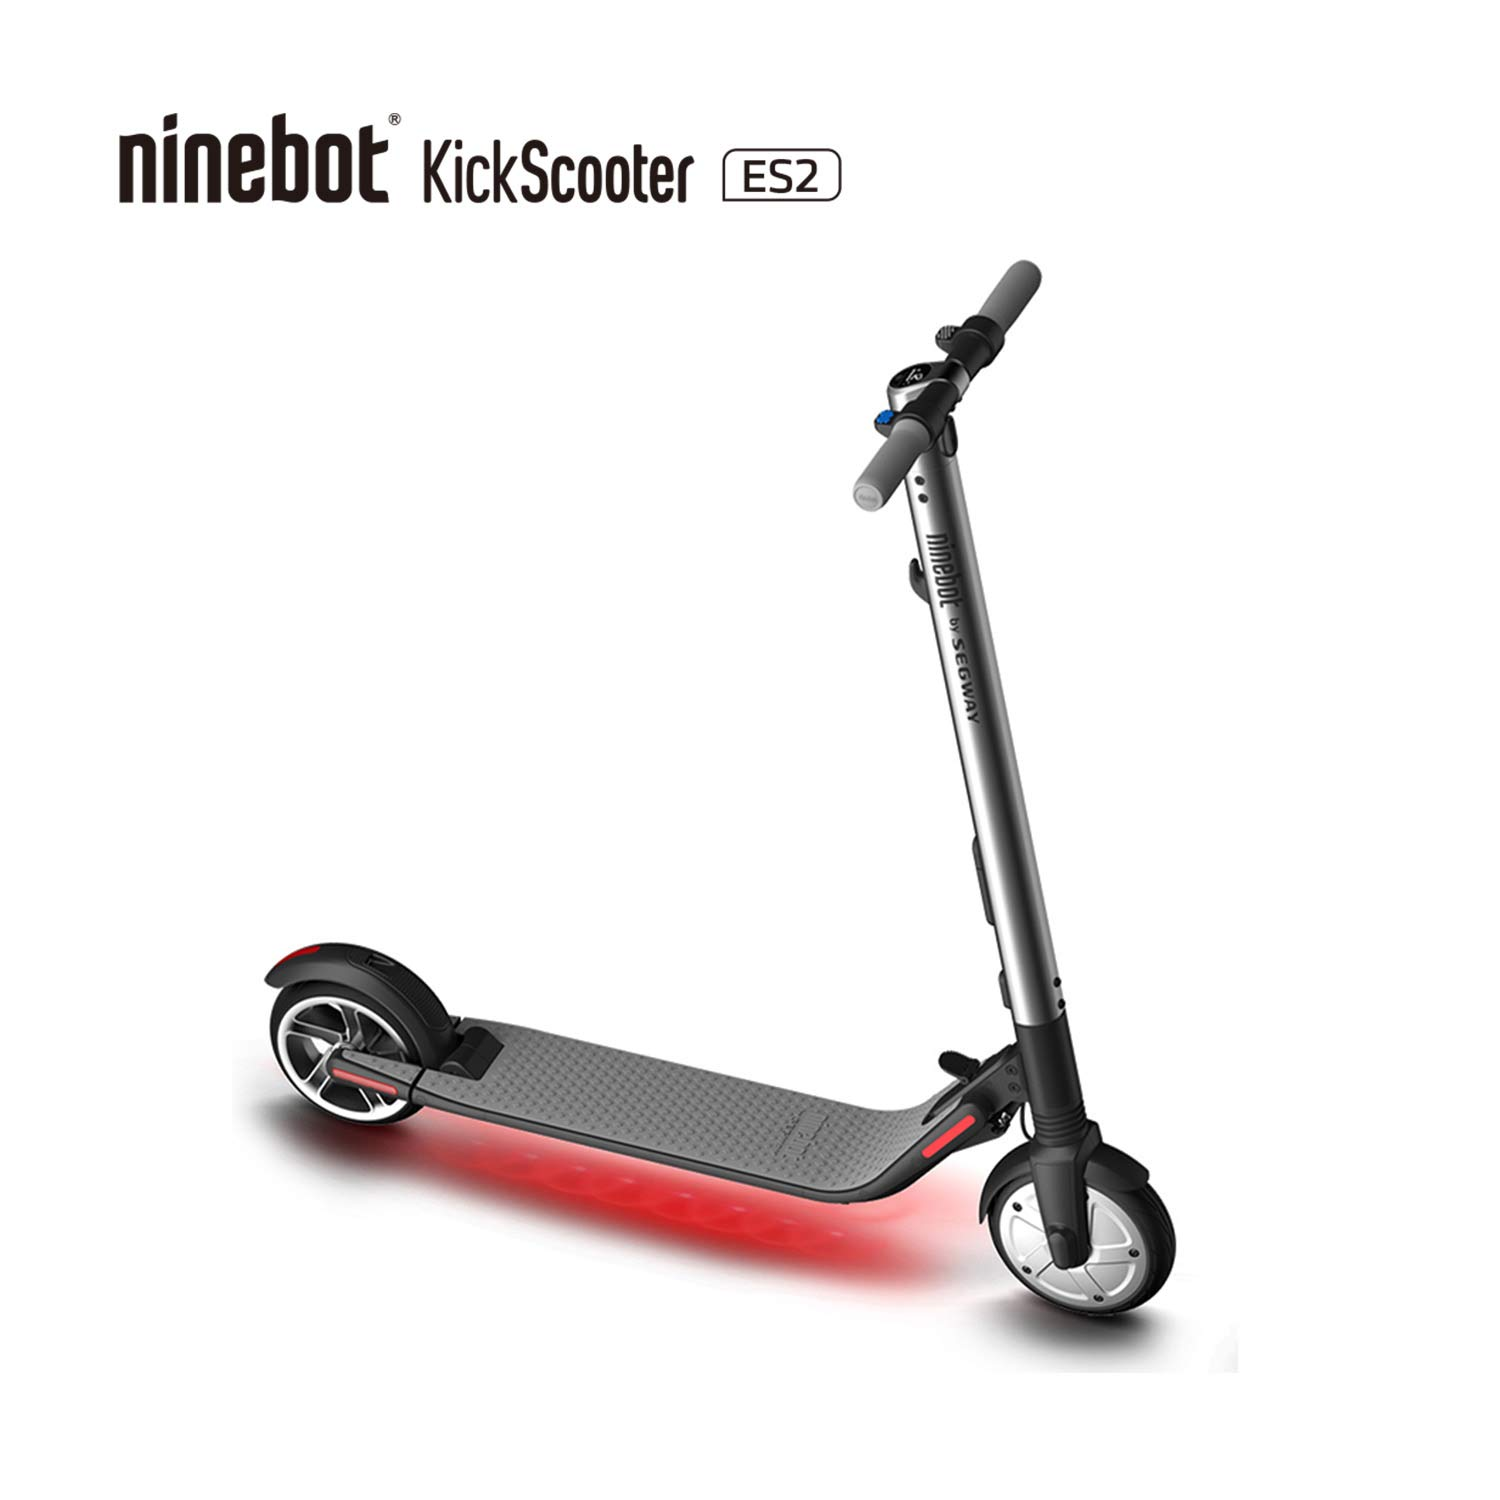 Segway Ninebot ES2 Folding Electric Kick Scooter, Silver by Segway